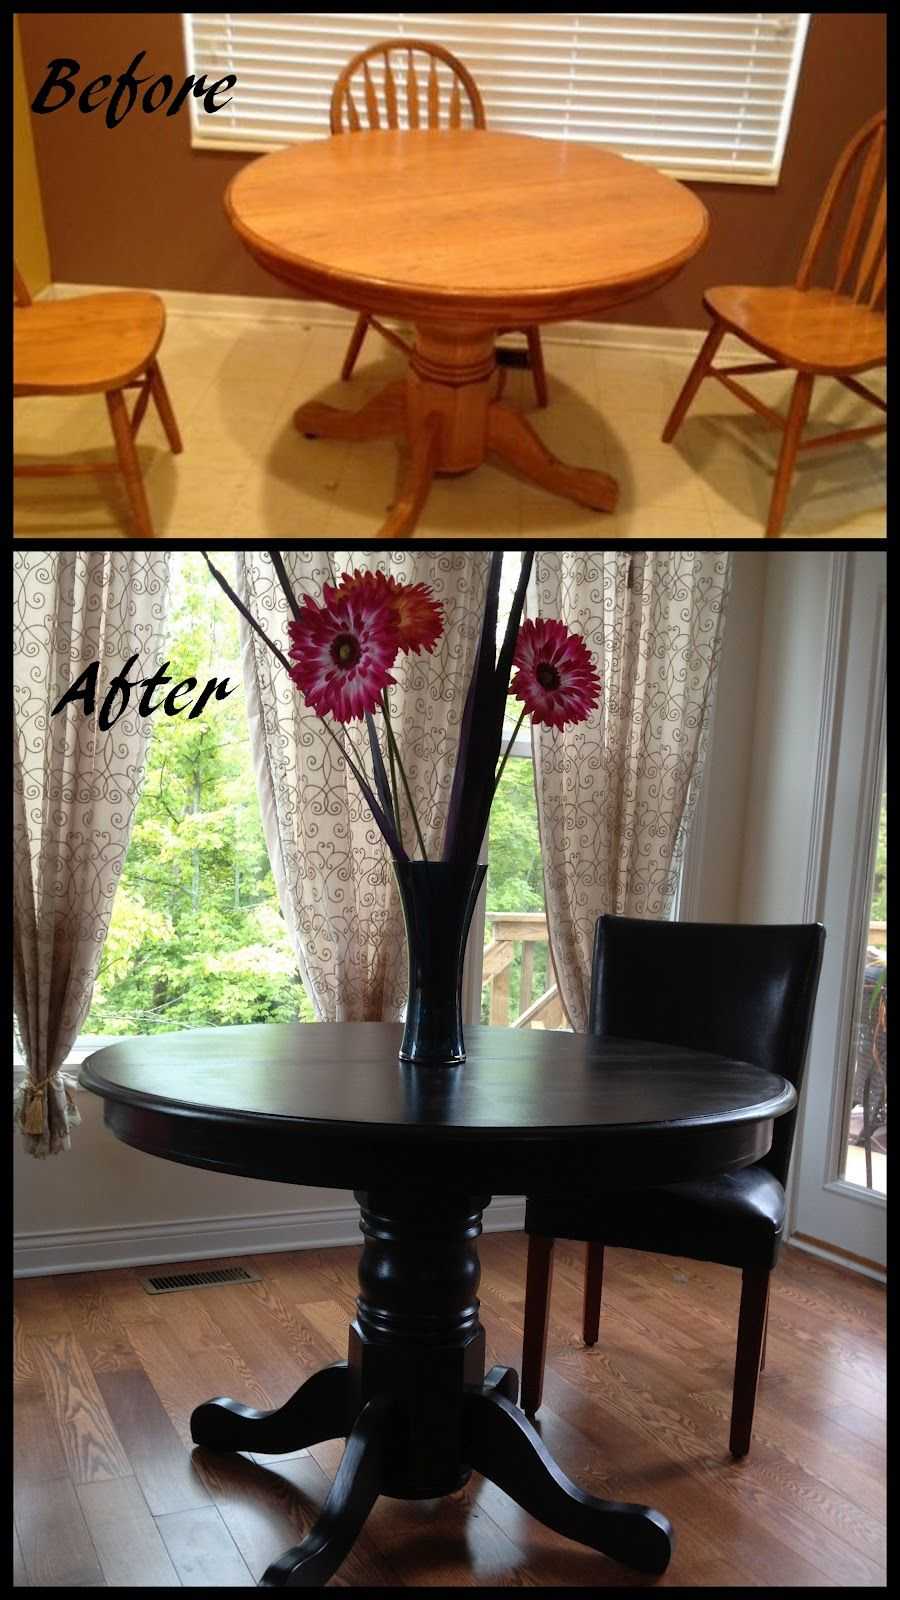 Home Goods Kitchen Table And Chairs Wedding Chair Covers For Sale In South Africa Redo, Transforms The Whole Space! | How Cool Is That! Pinterest ...